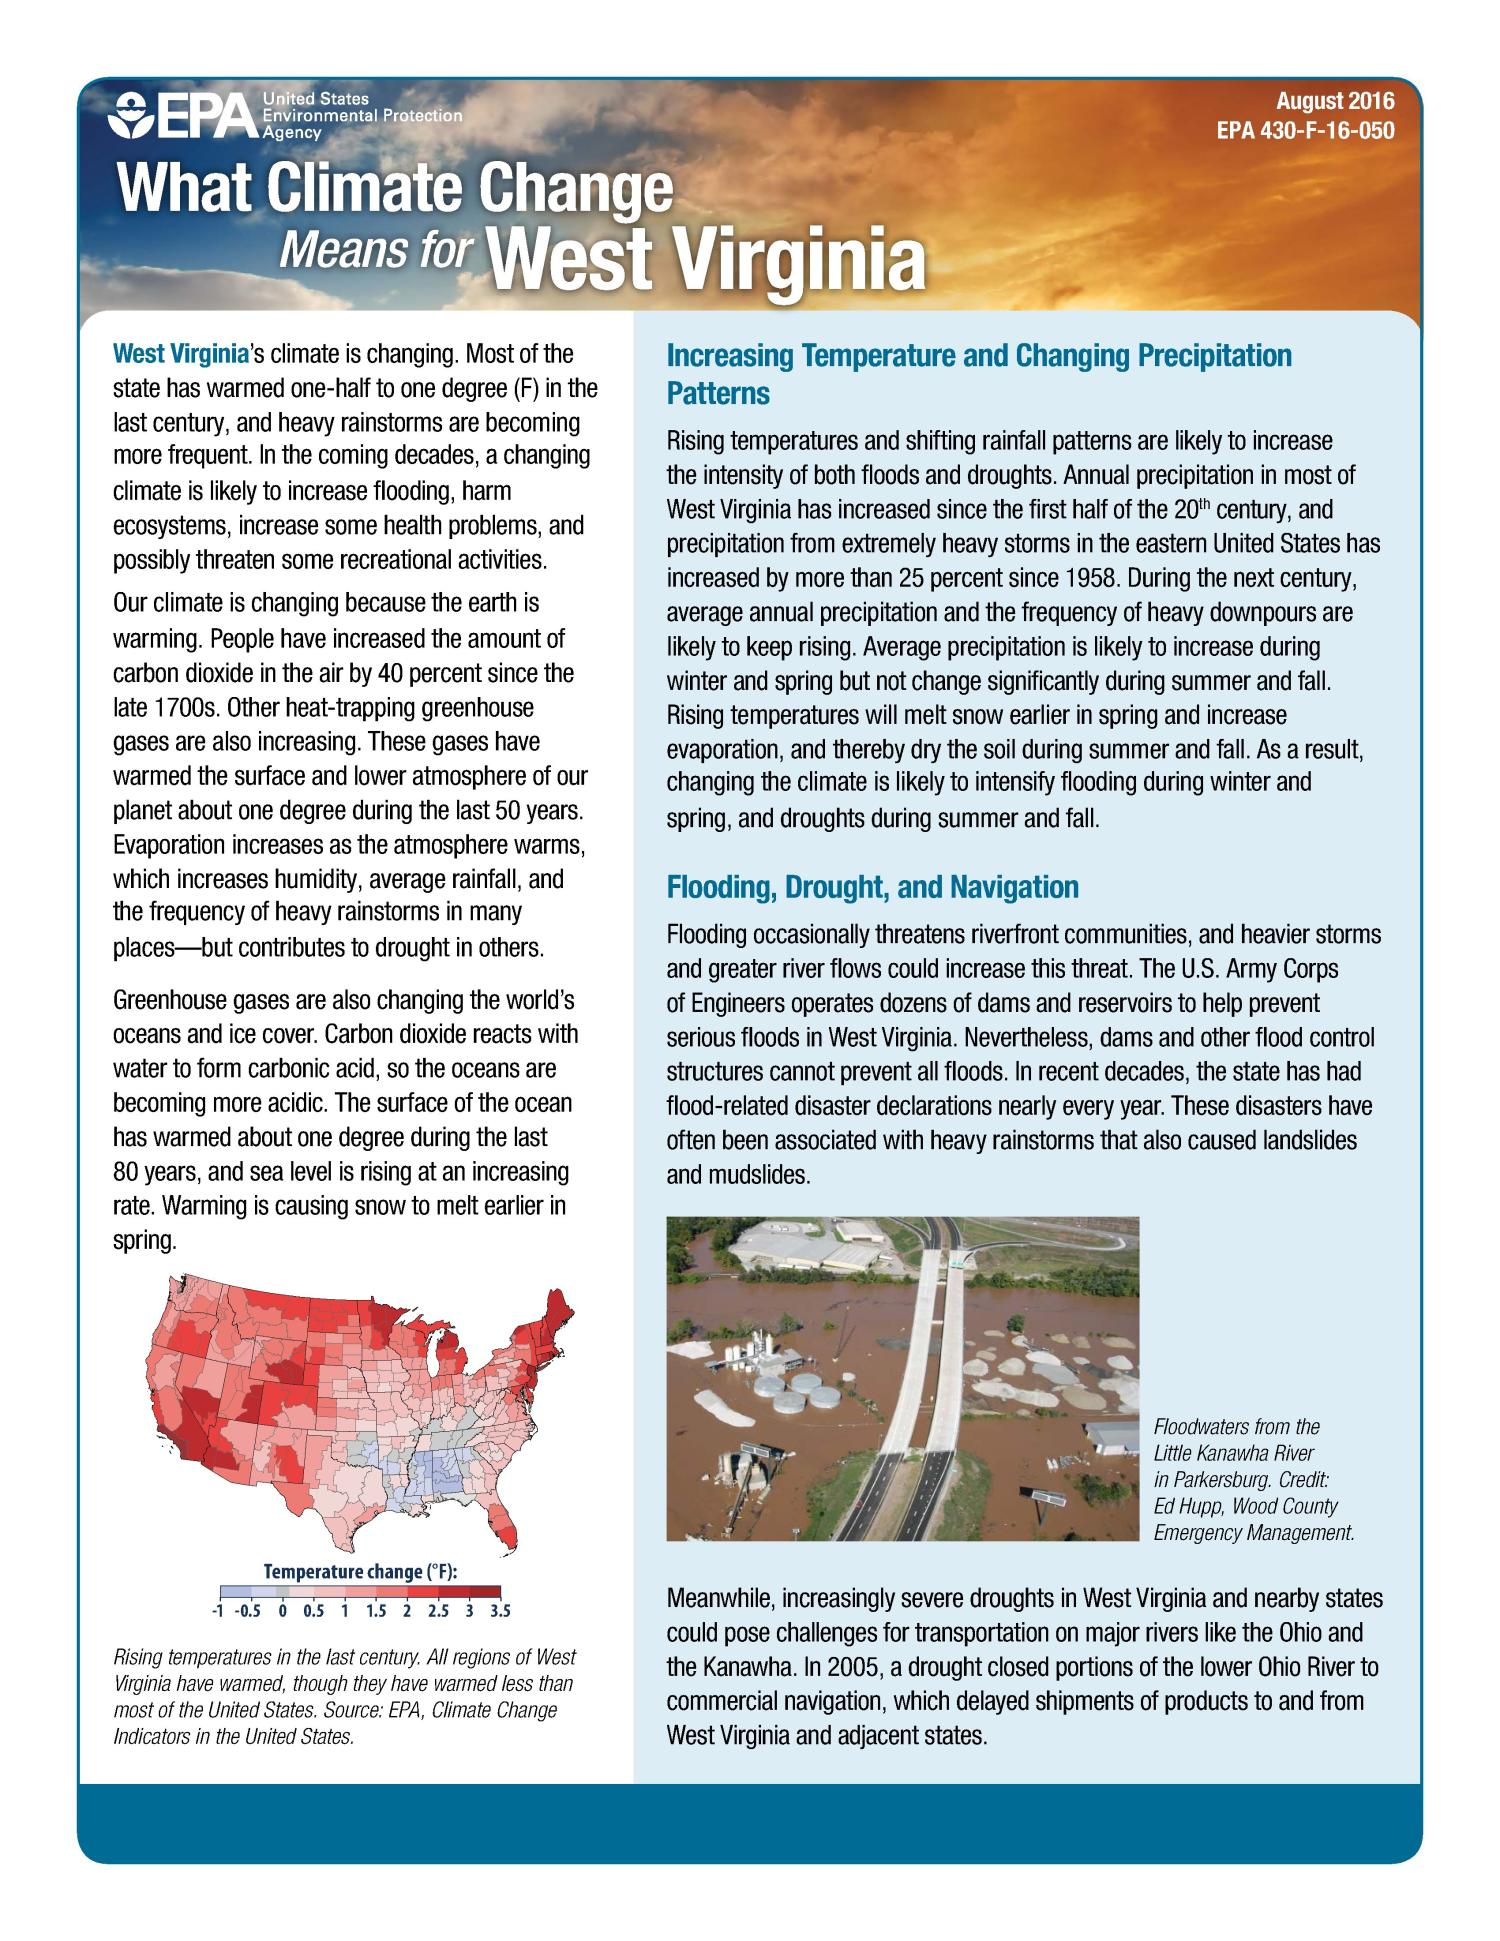 What Climate Change Means for West Virginia                                                                                                      [Sequence #]: 1 of 2